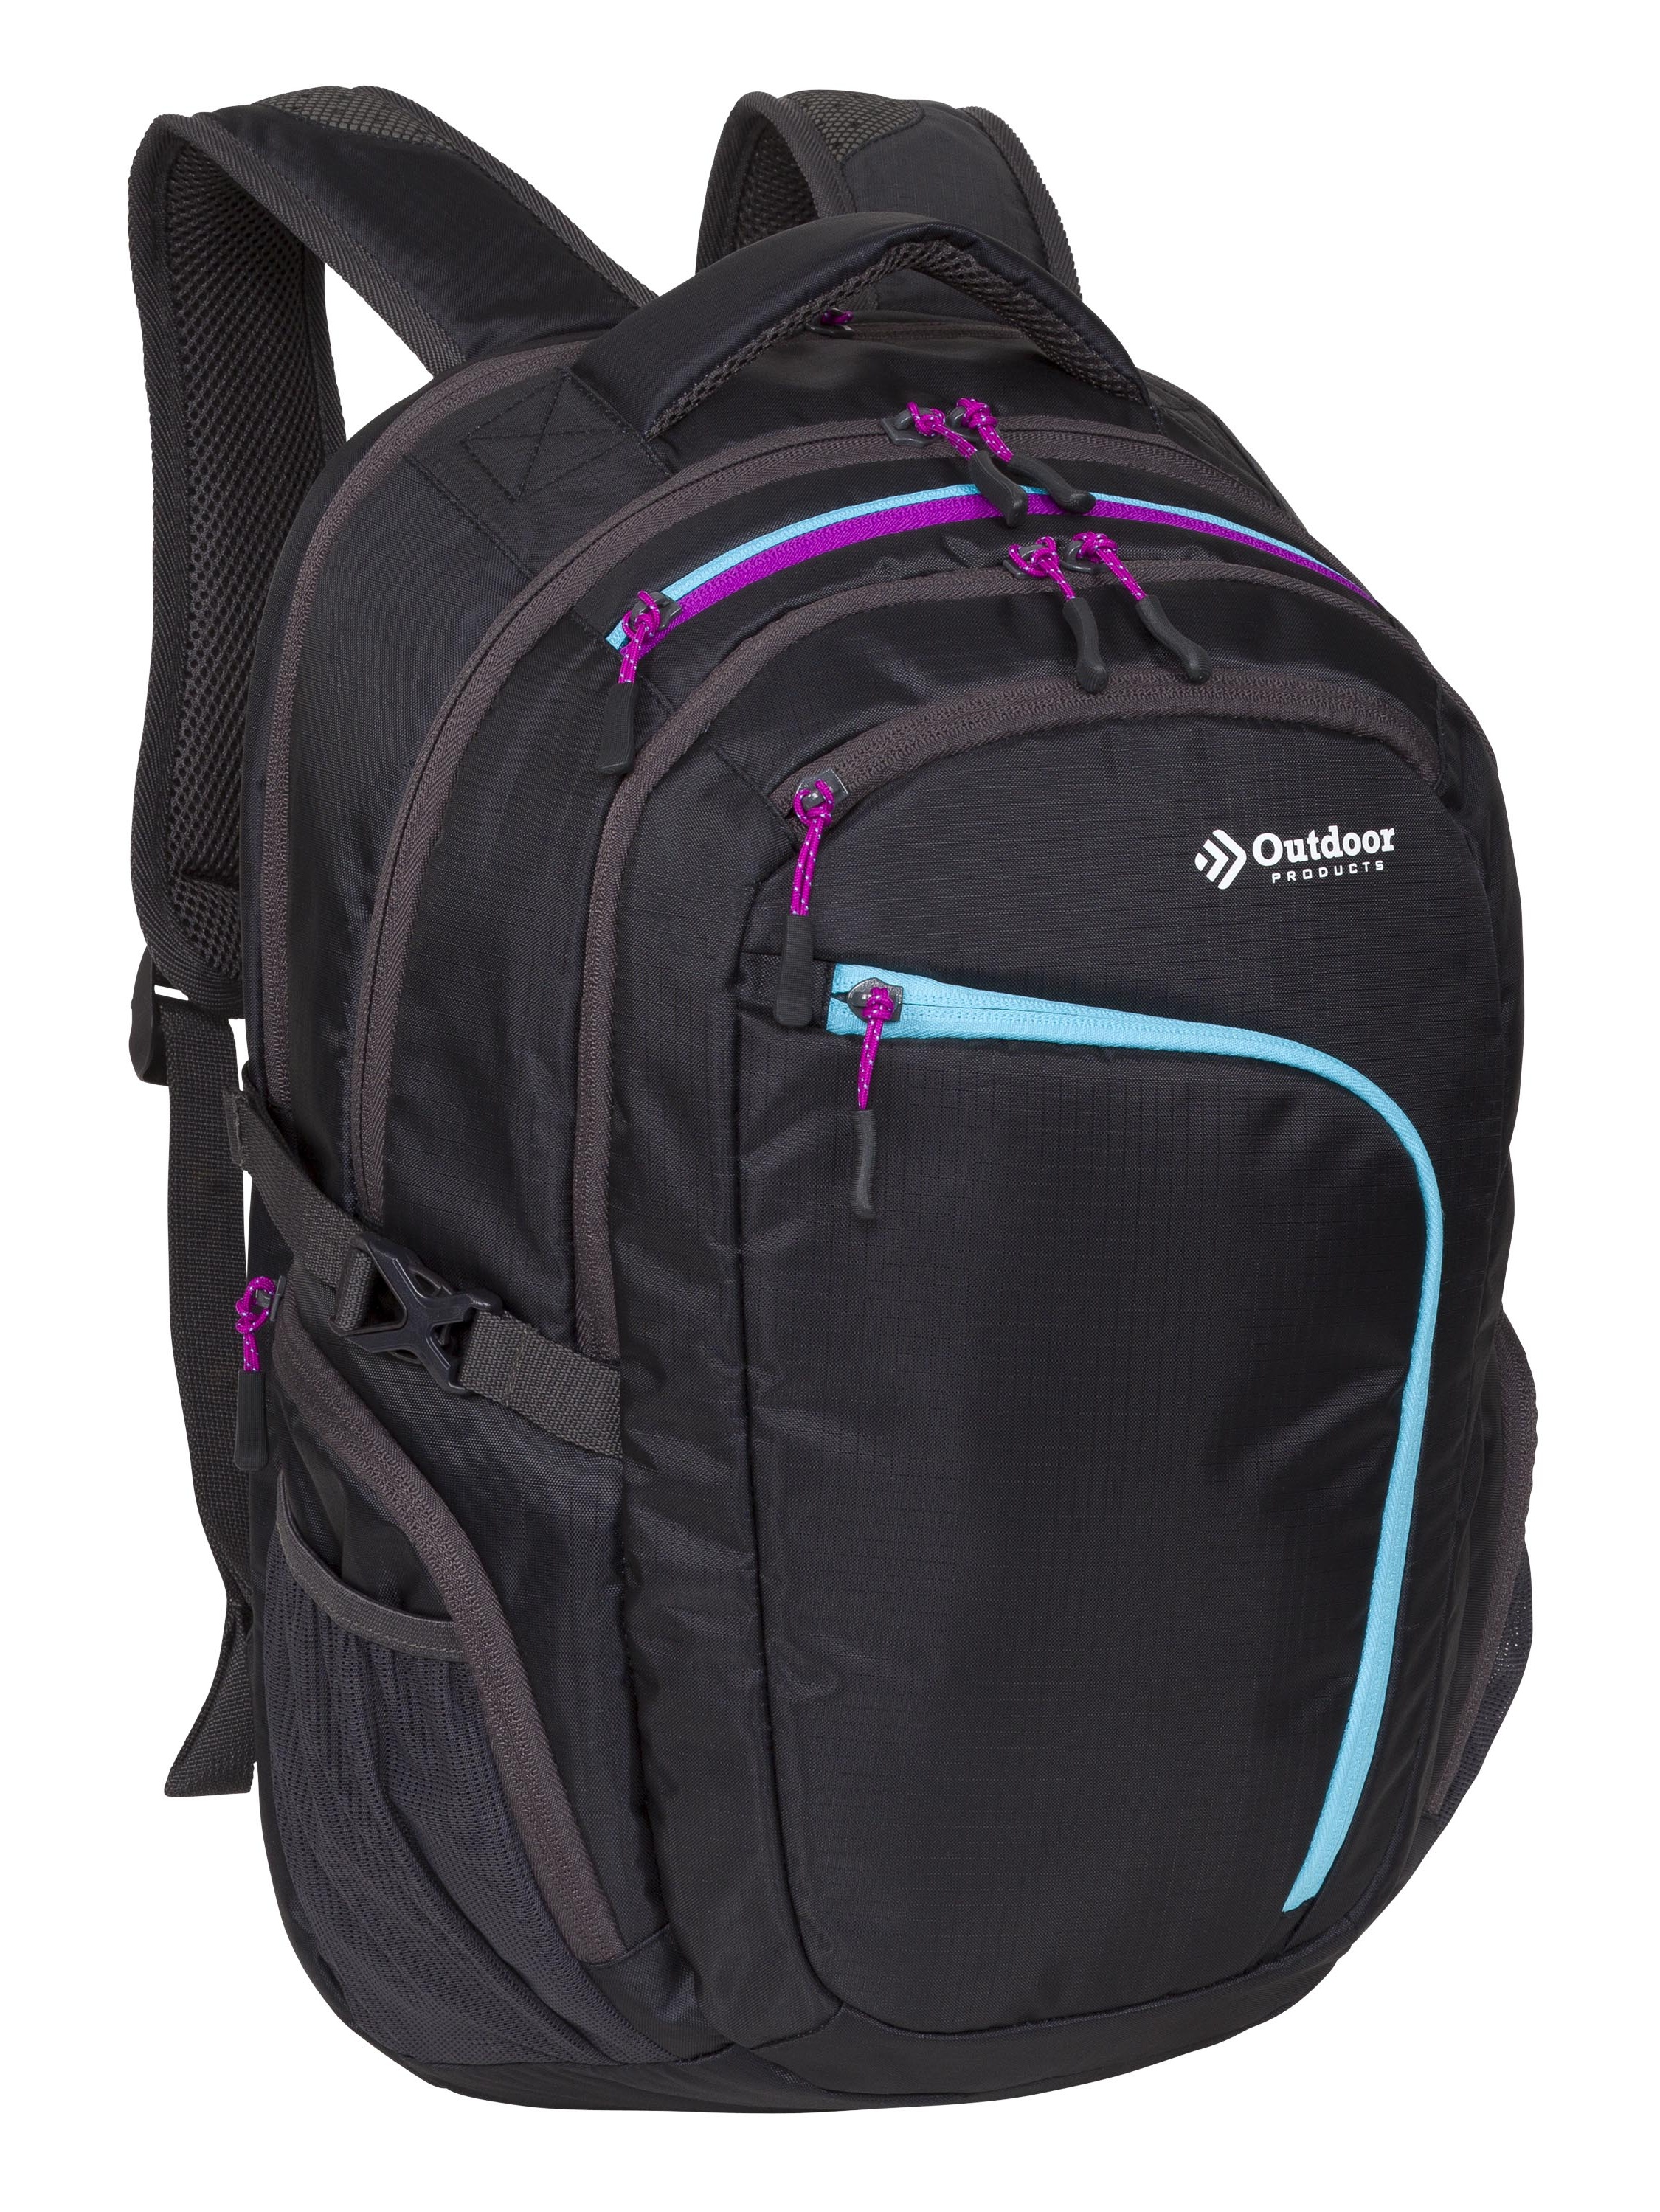 Outdoor Products 12 Piece Back to School Rollout Kit